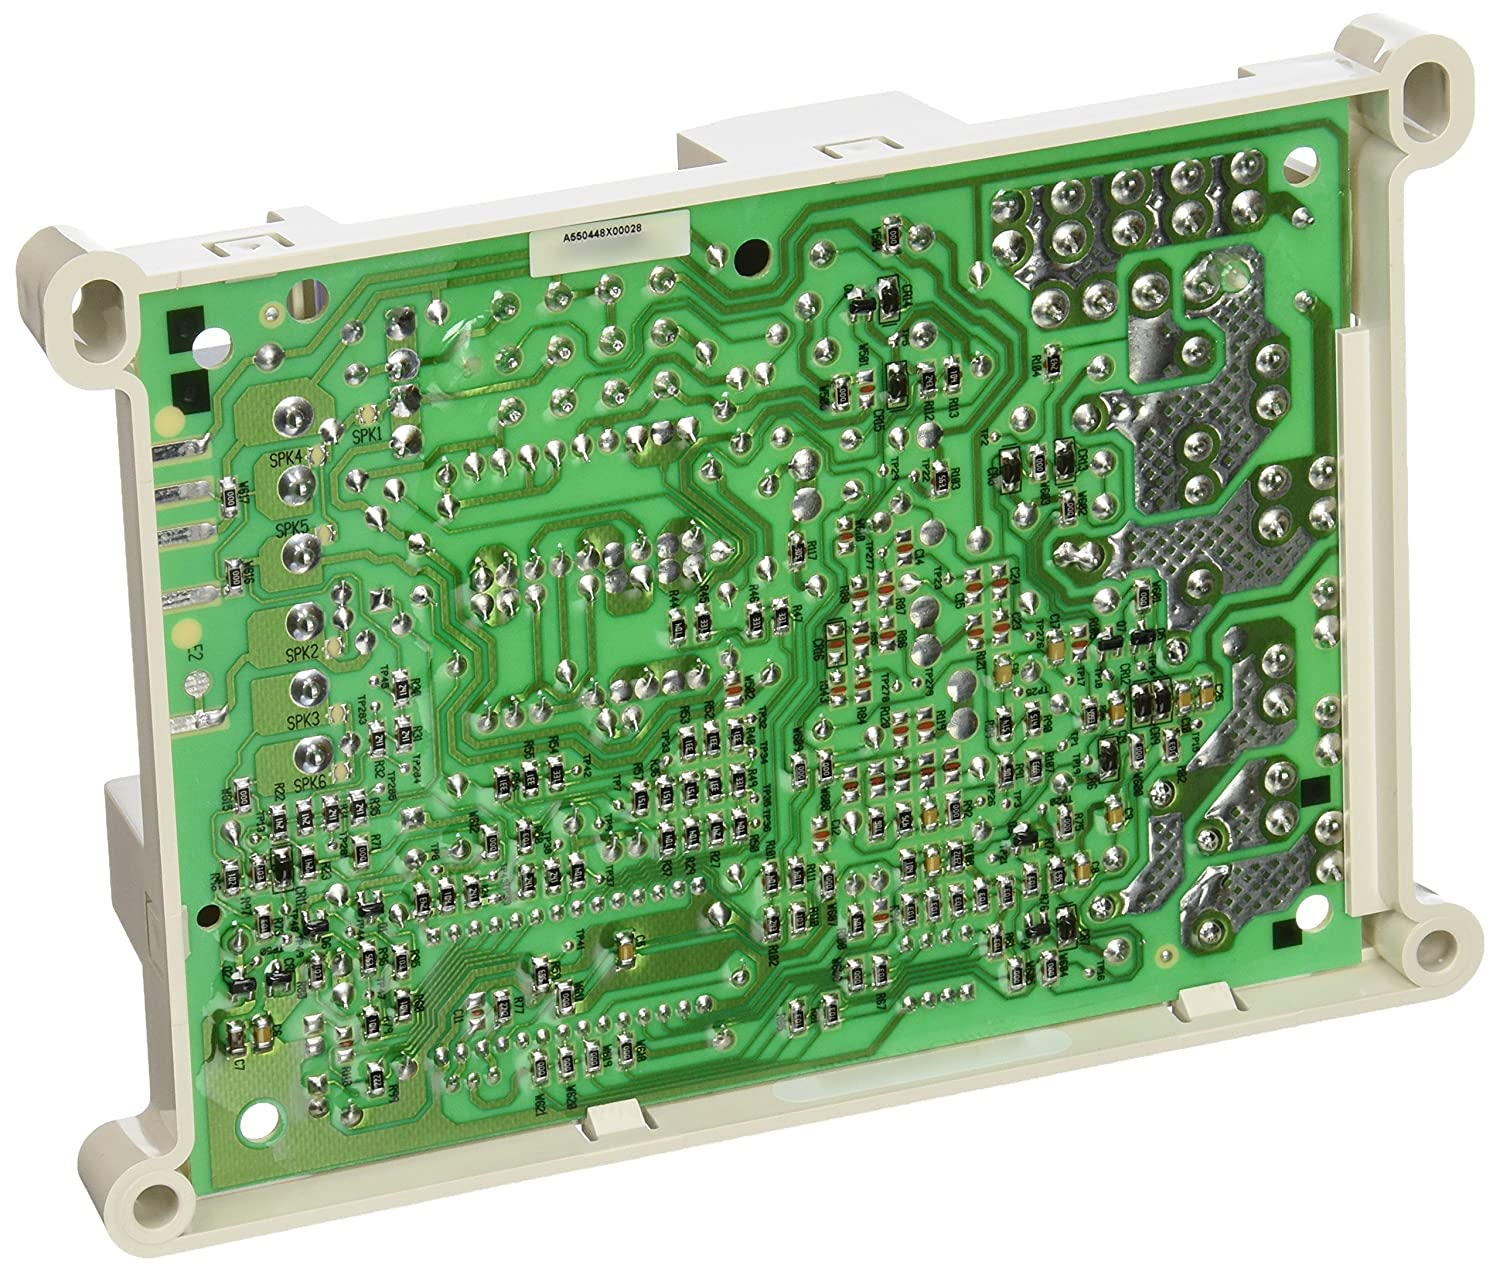 White Rodgers 50a55 843 Ignition Control Module Detector Printed Circuit Board Only 1 5 X 2 This Compact